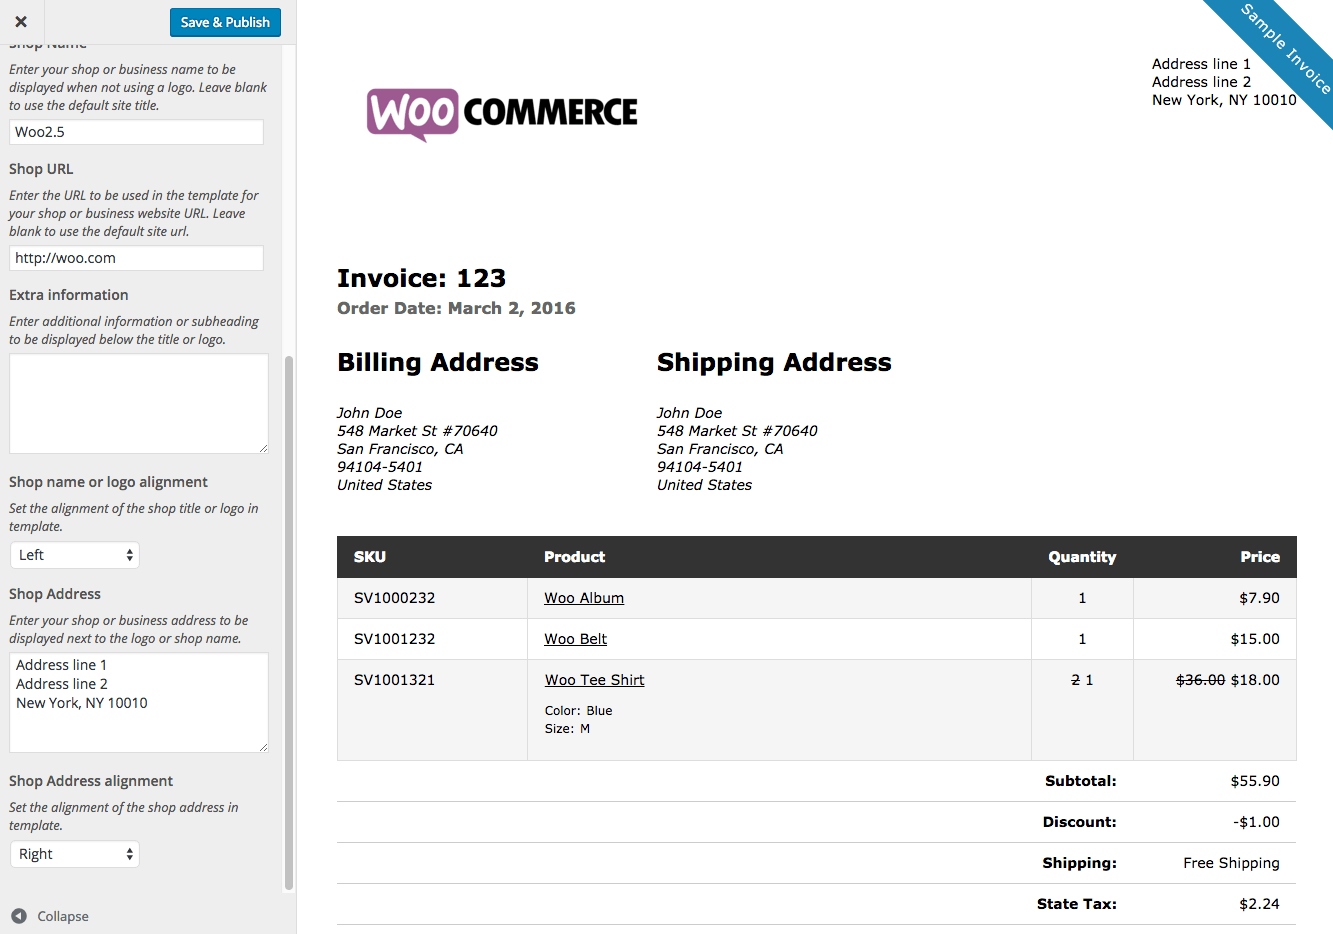 Floobydustus  Stunning Print Invoices Amp Packing Lists  Woocommerce With Remarkable Woocommerce Print Invoices  Packing Lists Customizer With Astounding What Does Gross Receipts Mean Also Evernote Receipts In Addition Yellow Cab Receipt And Android Read Receipts As Well As Target Gift Receipt Additionally Rent Payment Receipt From Woocommercecom With Floobydustus  Remarkable Print Invoices Amp Packing Lists  Woocommerce With Astounding Woocommerce Print Invoices  Packing Lists Customizer And Stunning What Does Gross Receipts Mean Also Evernote Receipts In Addition Yellow Cab Receipt From Woocommercecom